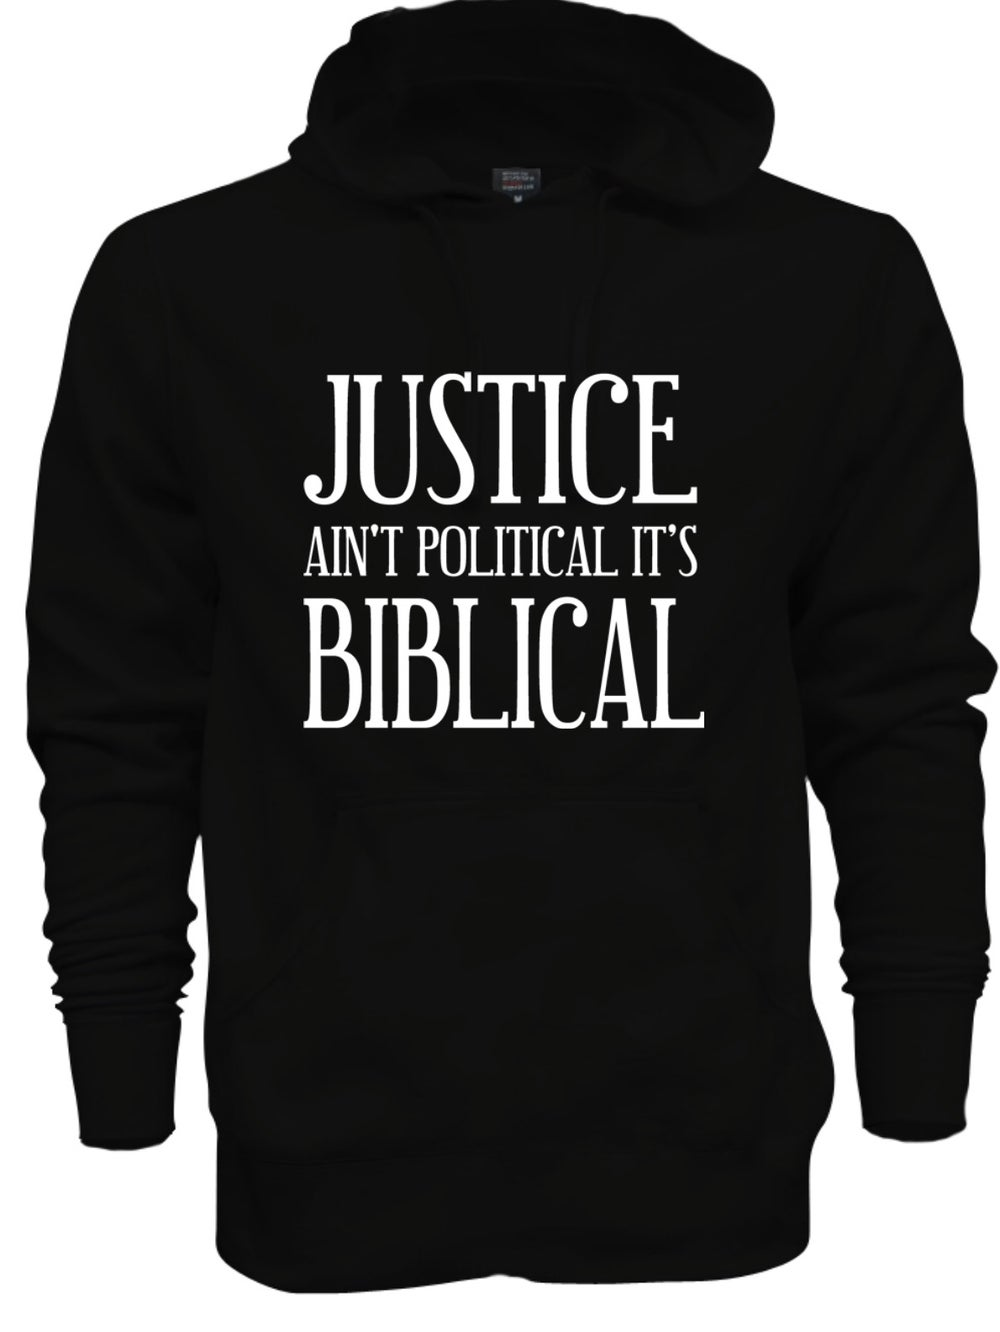 Image of JUSTICE AIN'T POLITICAL IT'S BIBLICAL HOODIE (UNISEX) PLEASE ALLOW UP TO 14-16 BUSINESS DAYS TO RECE